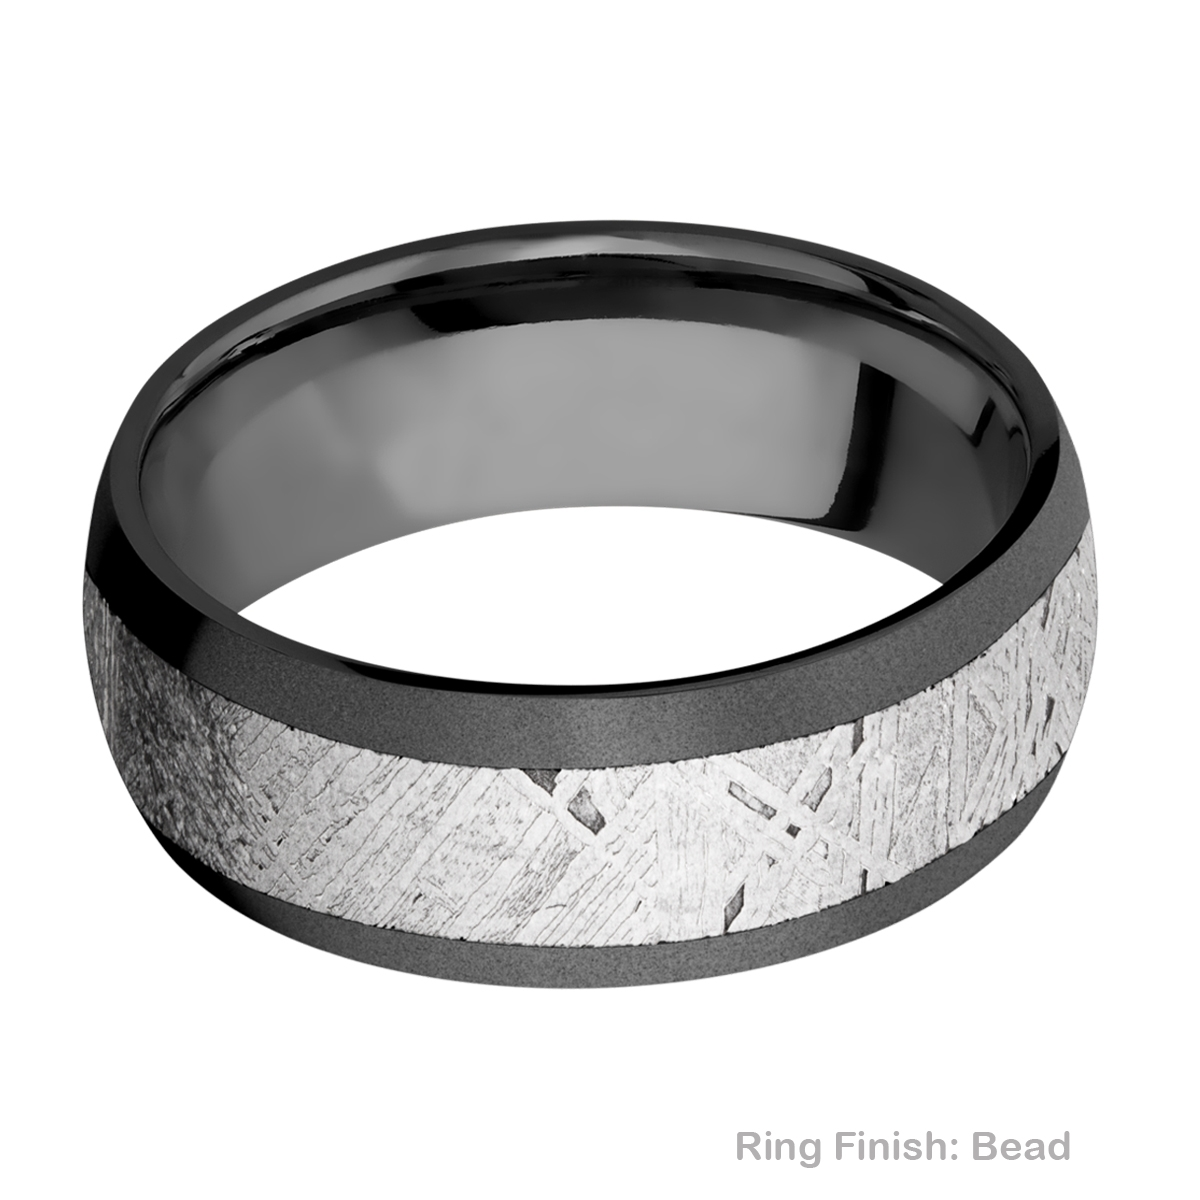 Lashbrook Z8D15/METEORITE Zirconium Wedding Ring or Band Alternative View 2